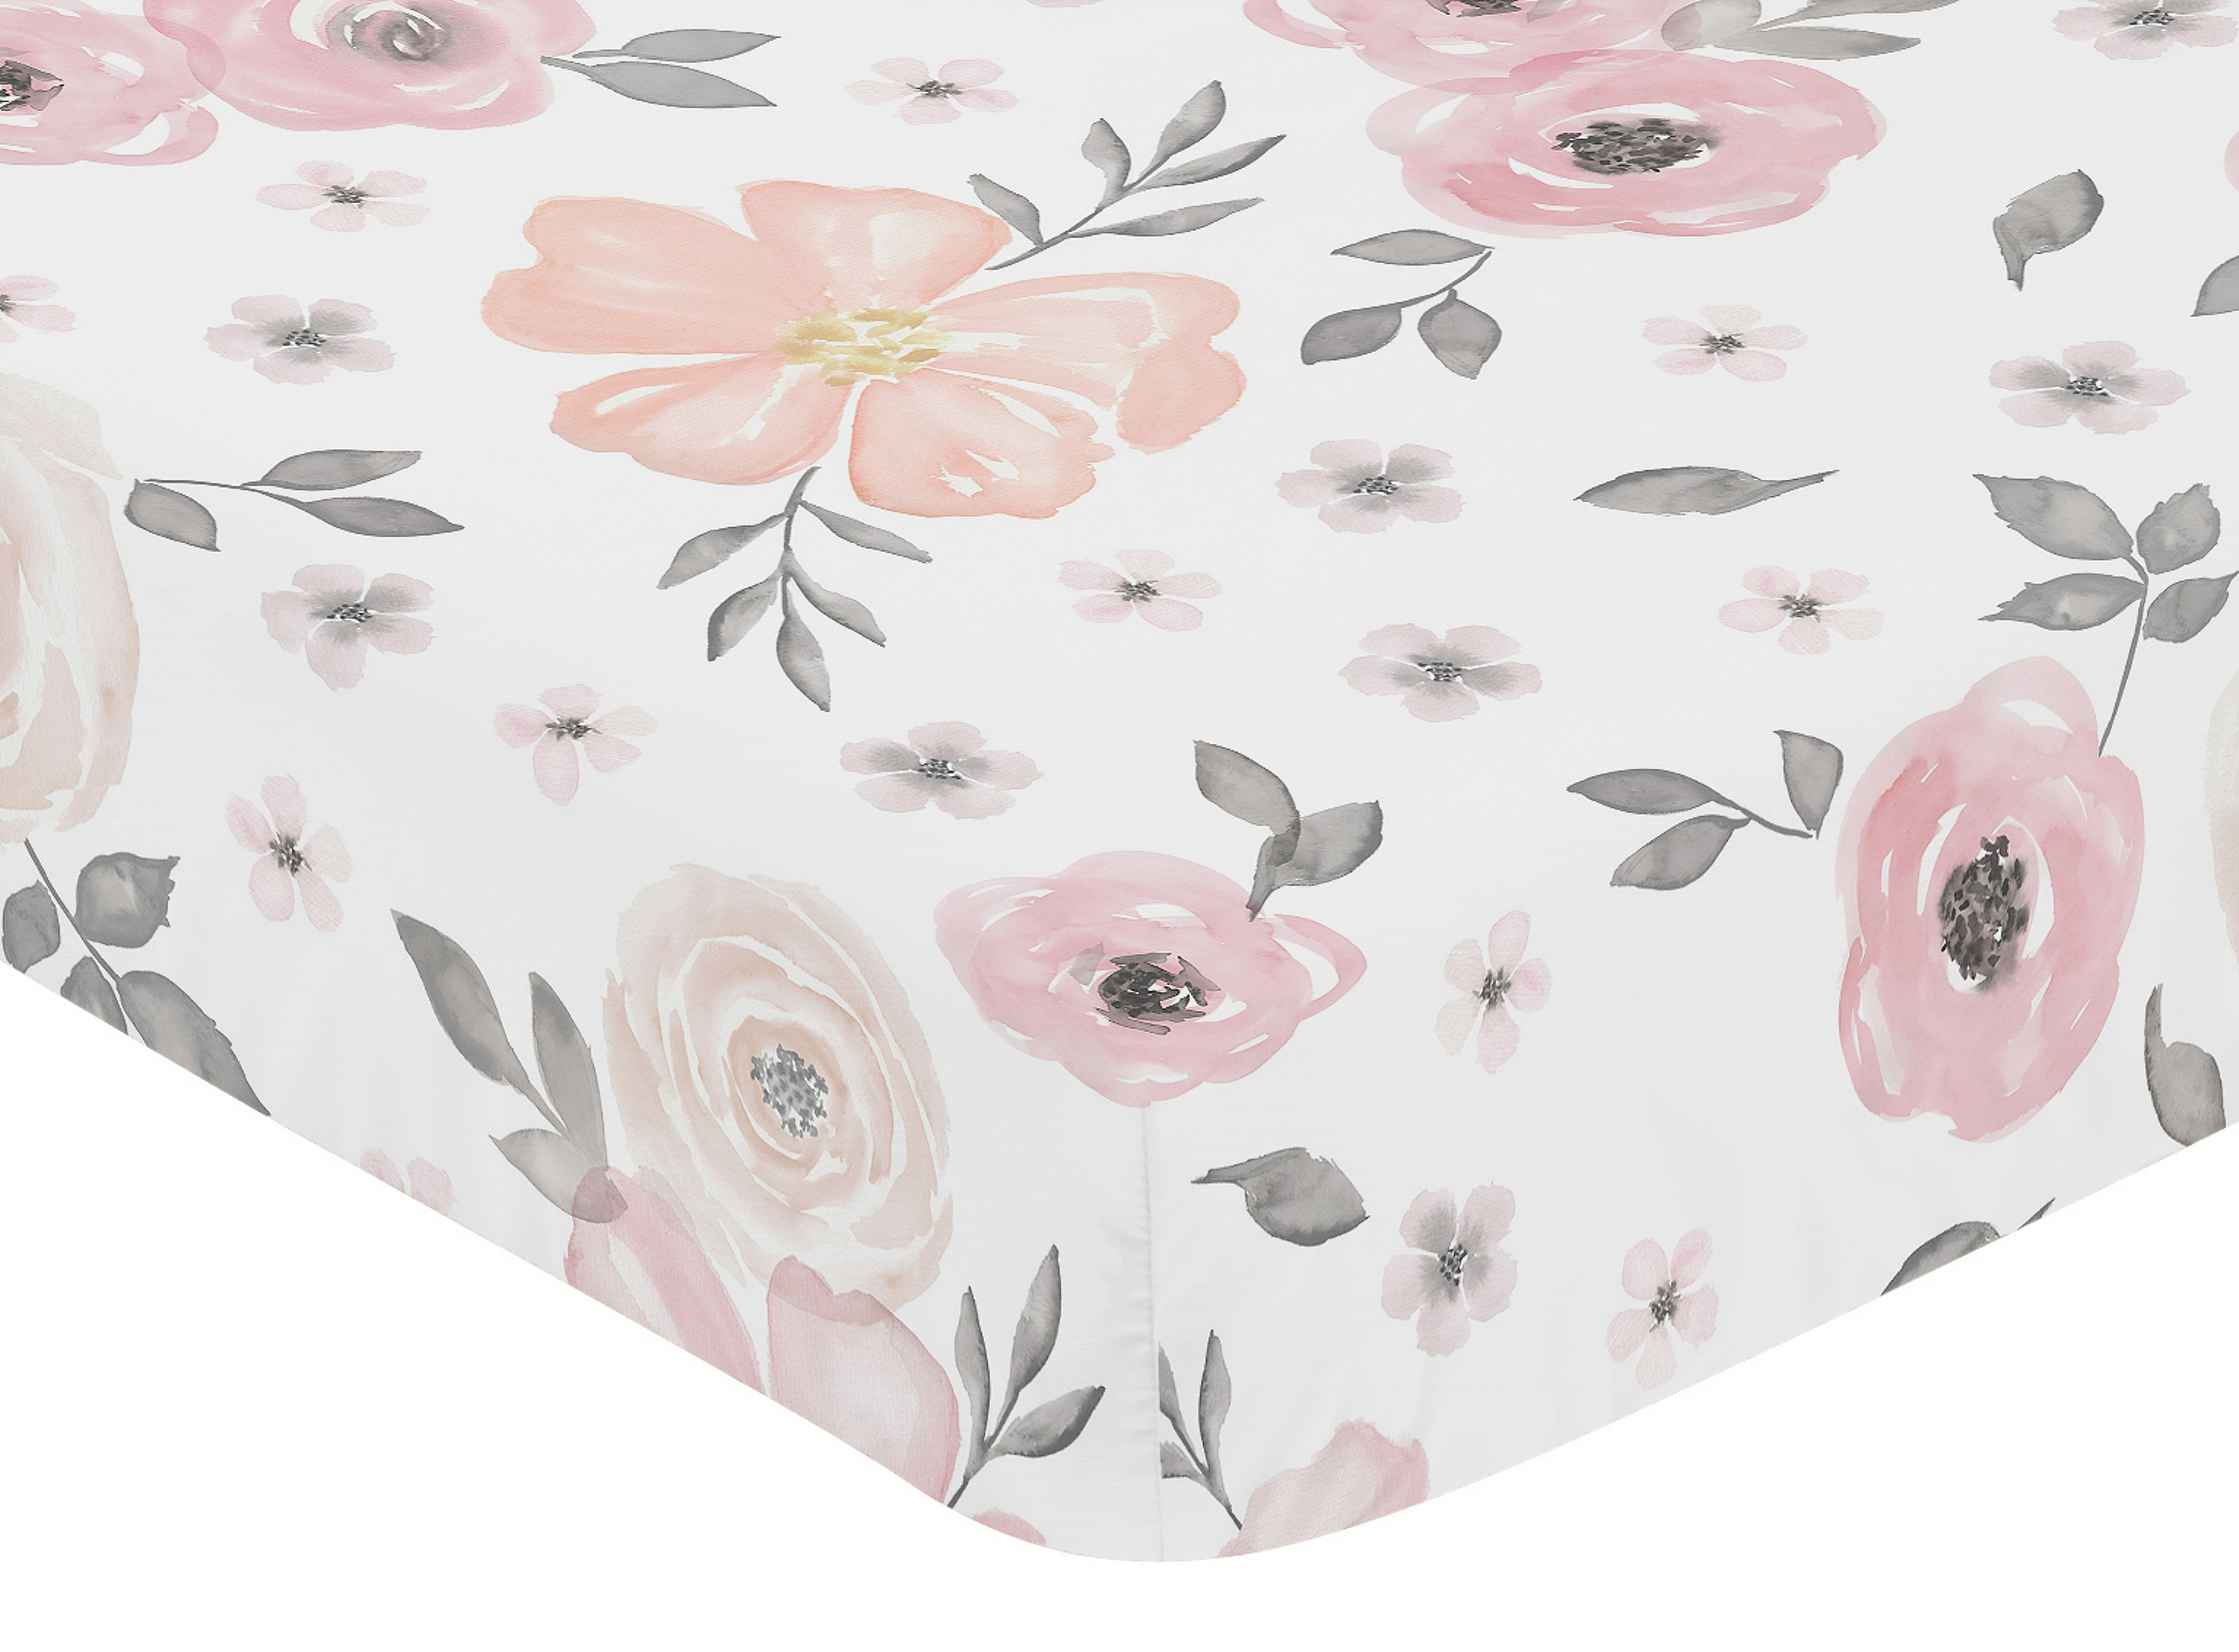 nursery ark size gender floral a own tag endearing tags simply girl the sock design cribs george baby bedding set easiest ideas to shocking monkey modern your noahs way of full quilt shabby quickest target sets crib decor furniture chic noteworthy